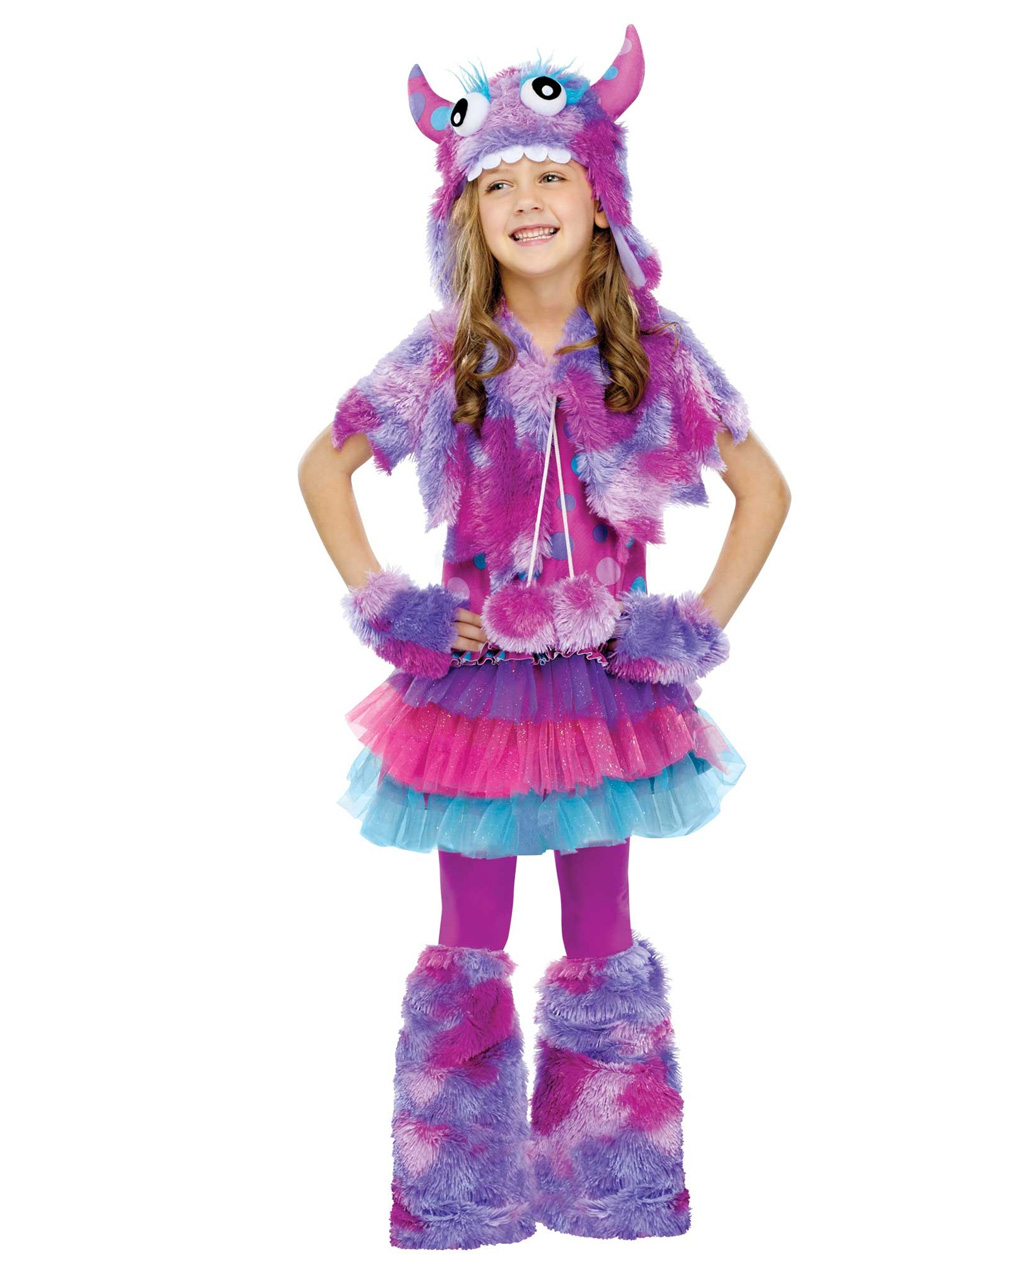 Purple Cuddly Monster Girl Costume Halloween costume | horror-shop.com